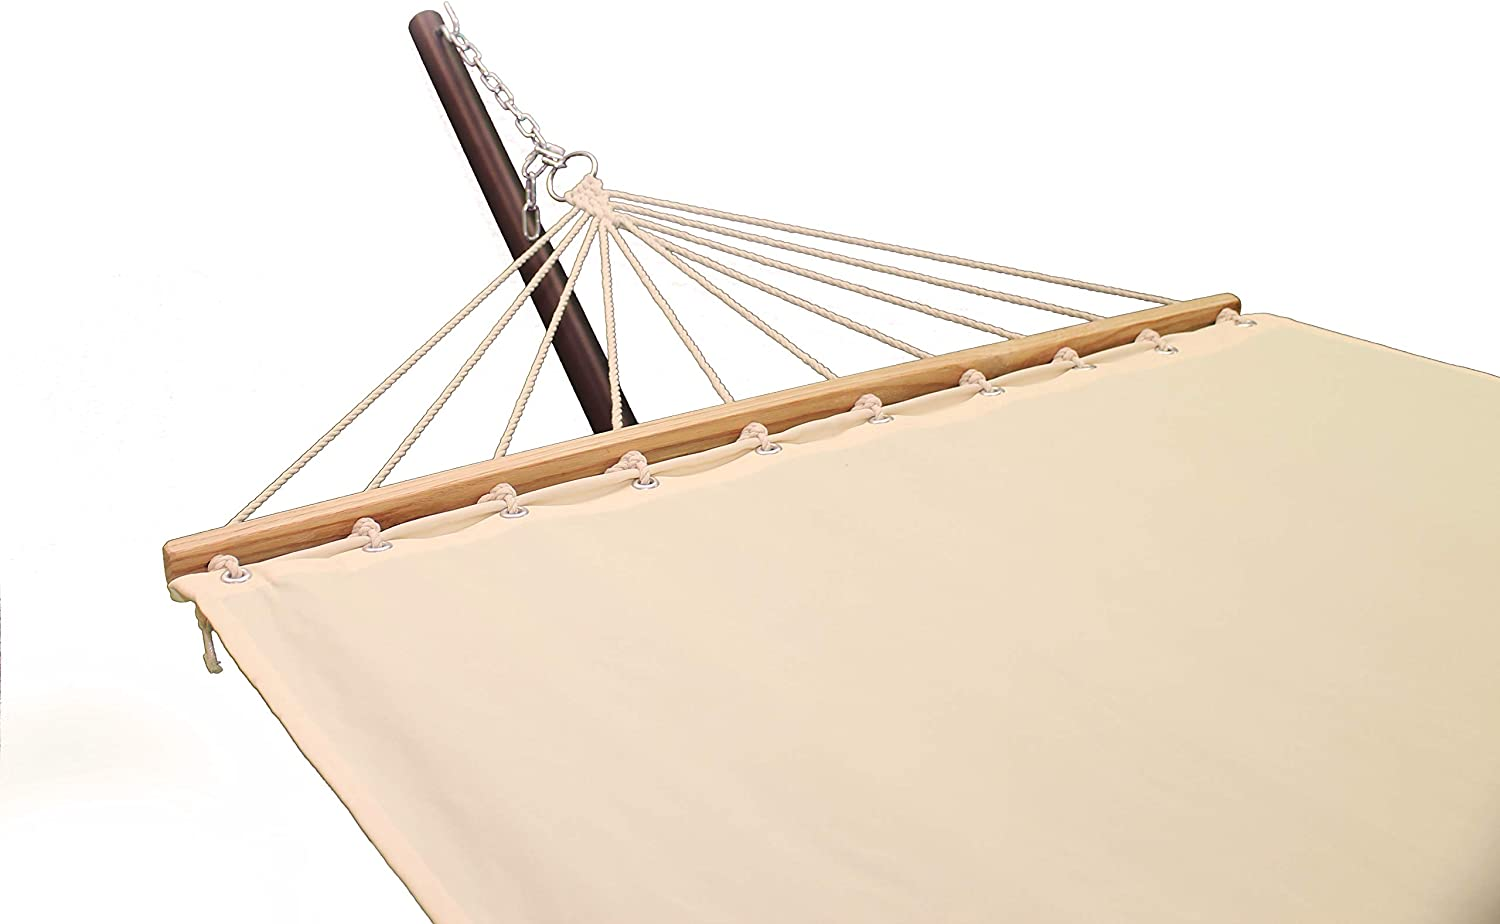 Project One Hammock, Quick Dry Hammock with Solid Wood Spreader Bar Outdoor Patio Yard Poolside Hammock. Waterproof and UV Resistance, 450 Pound Capacity (Ivory)